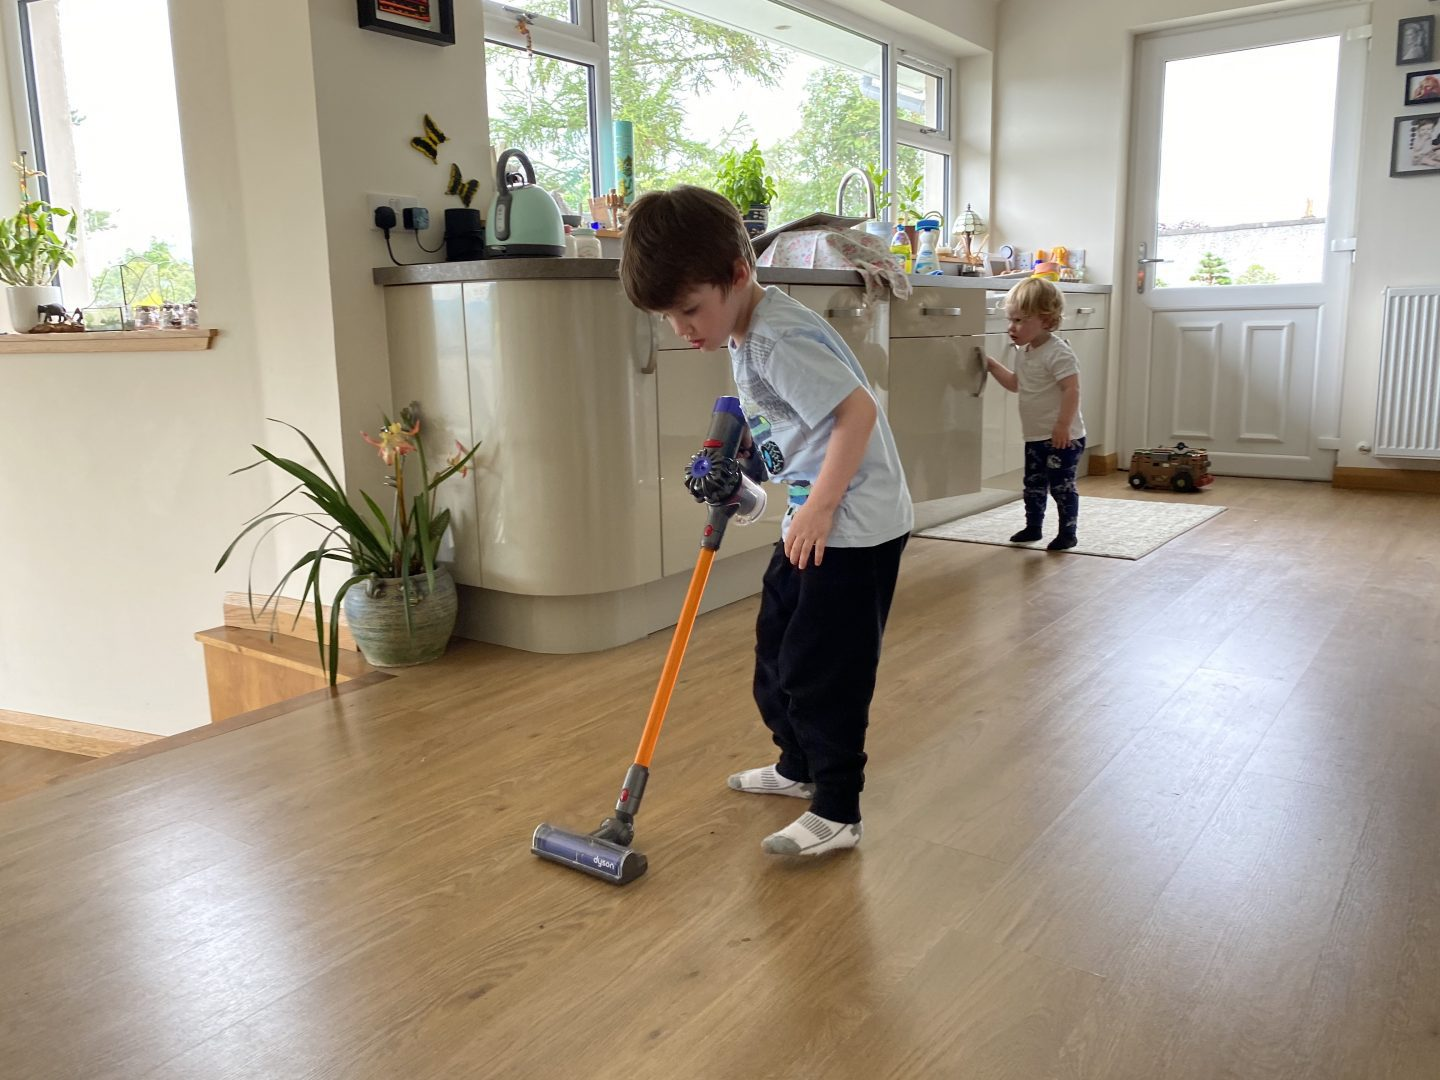 A boy in a kitchen using a toy Dyson cord-free vacuum cleaner